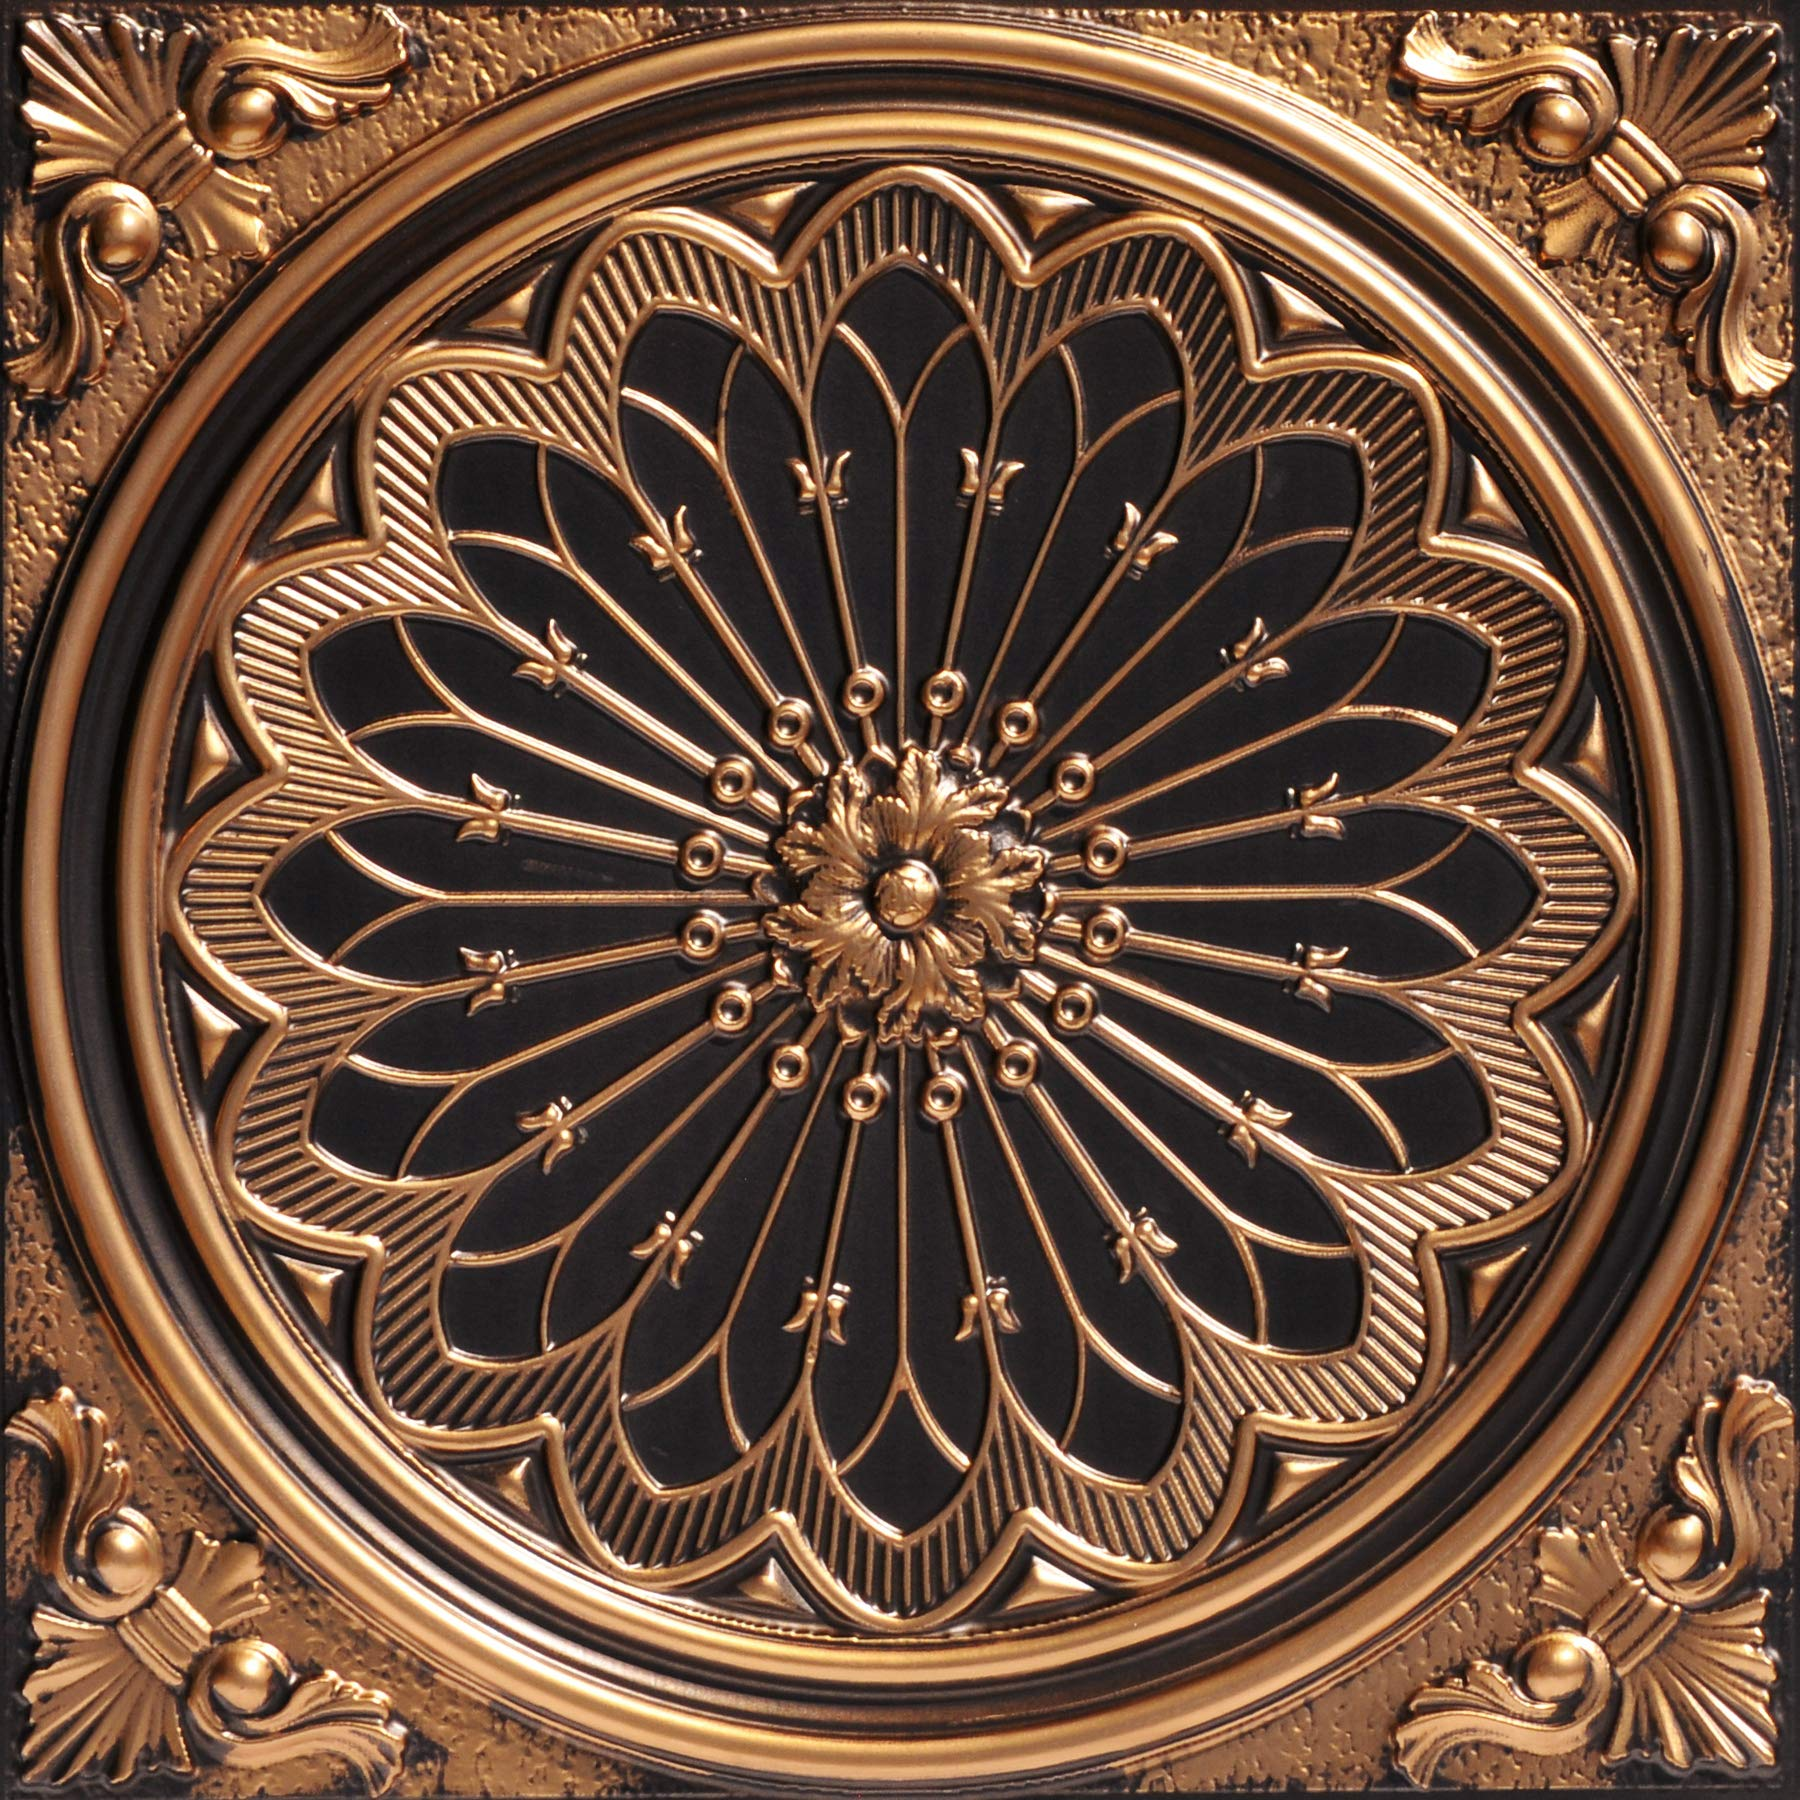 From Plain To Beautiful In Hours 238ag-24x24-25 Rose Window Ceiling Tile, Antique Gold, 25 by From Plain To Beautiful In Hours